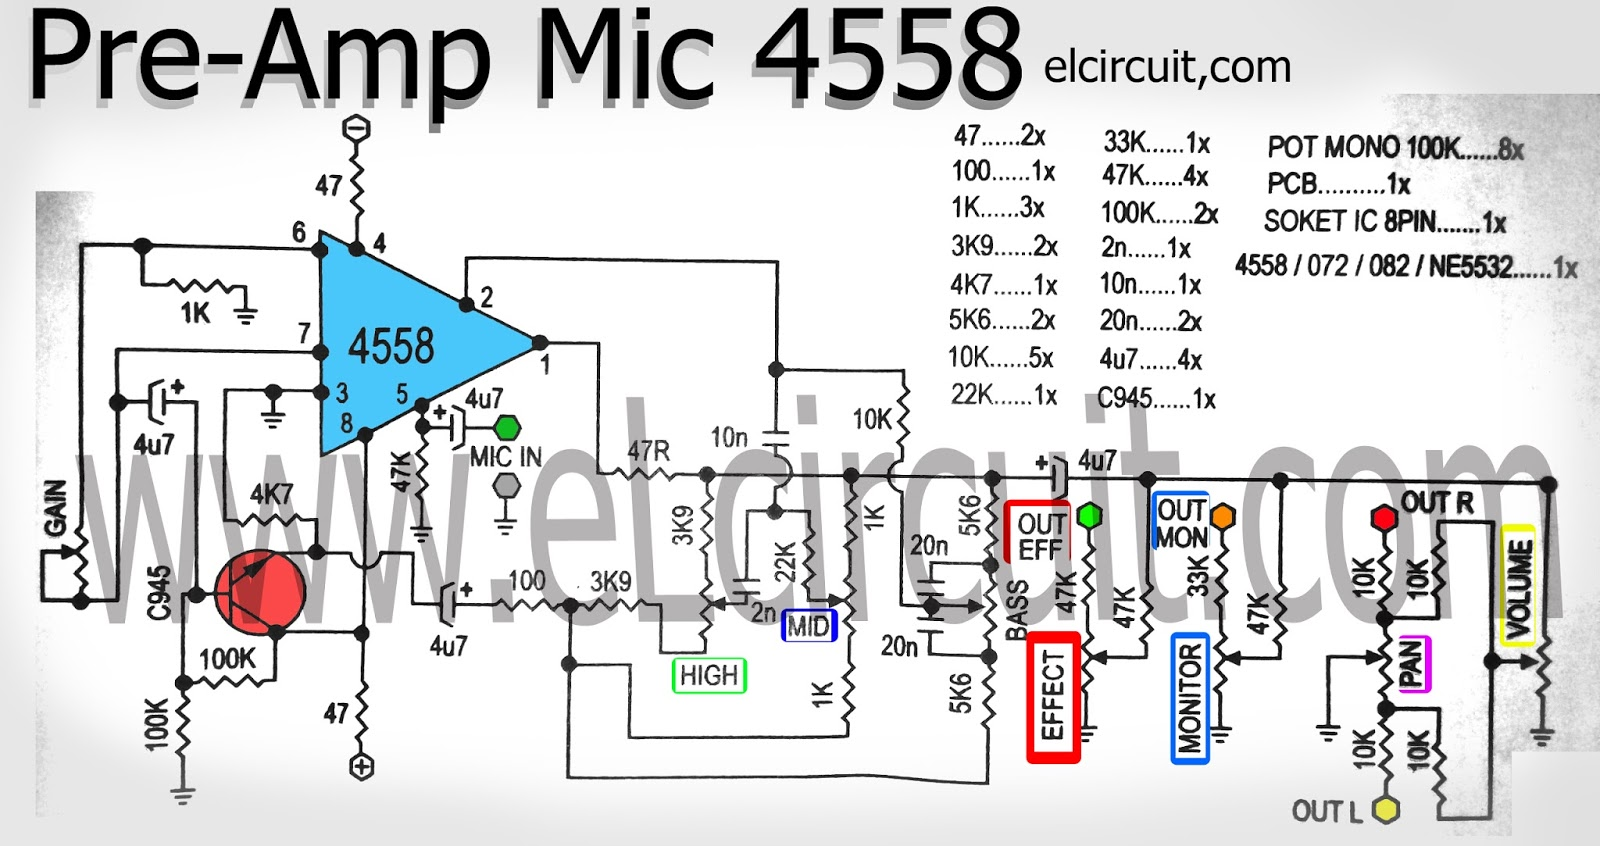 mic pre amplifier using ic 4558 electronic circuit rh elcircuit com JRC4558 Data Sheet JRC4558 Chip